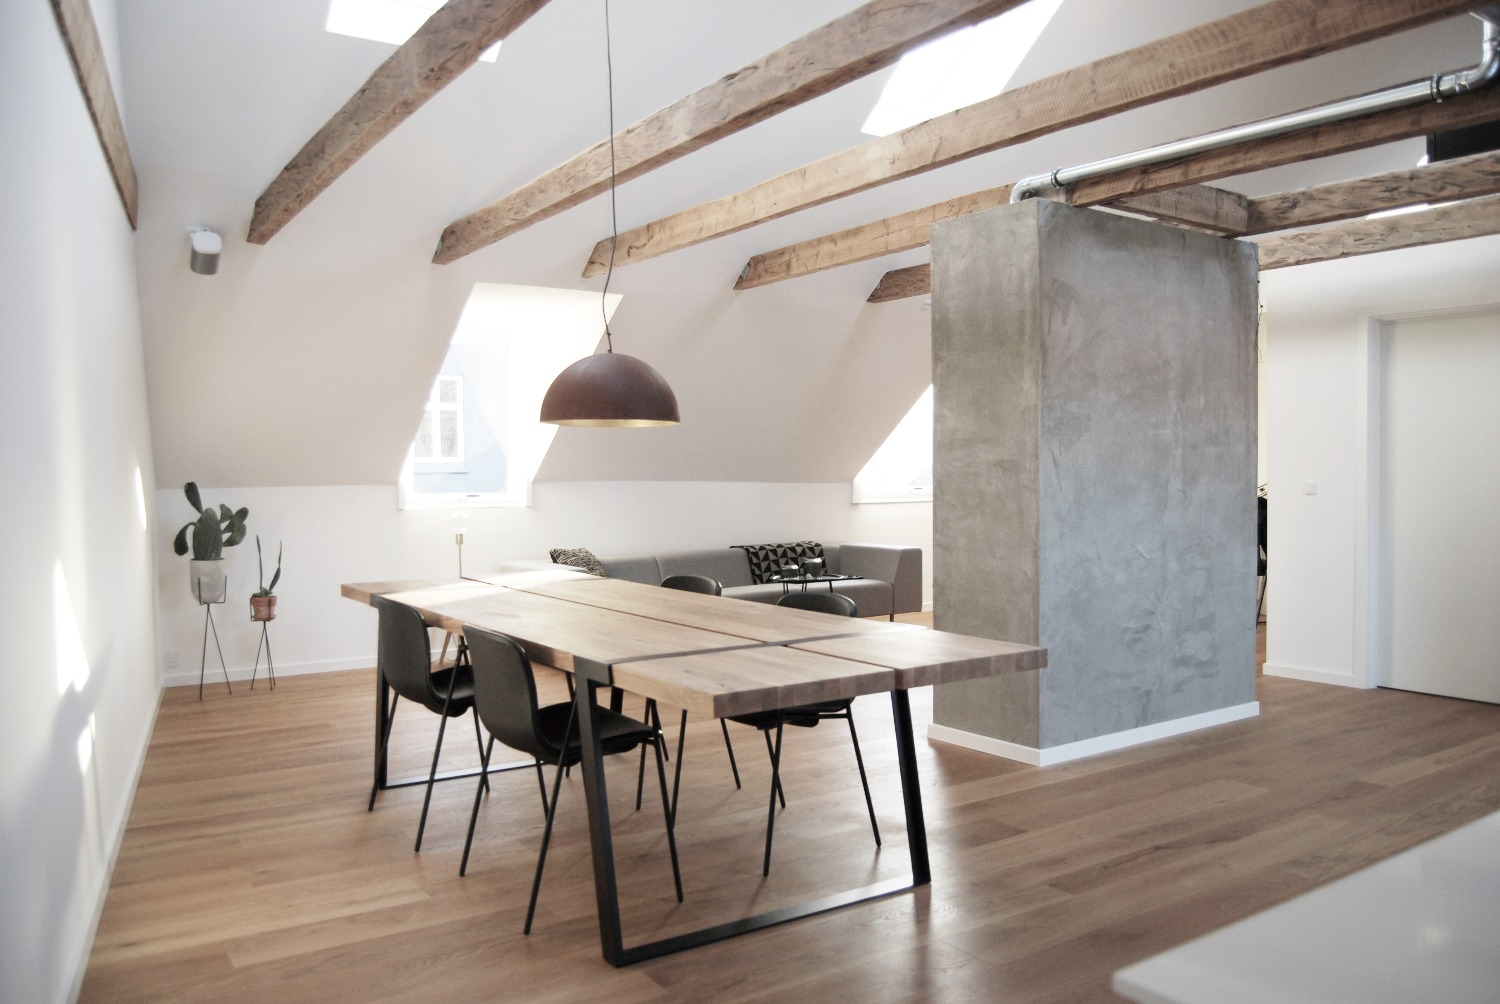 Wooden ceiling beams and concrete wall section in the dining area of the apartment